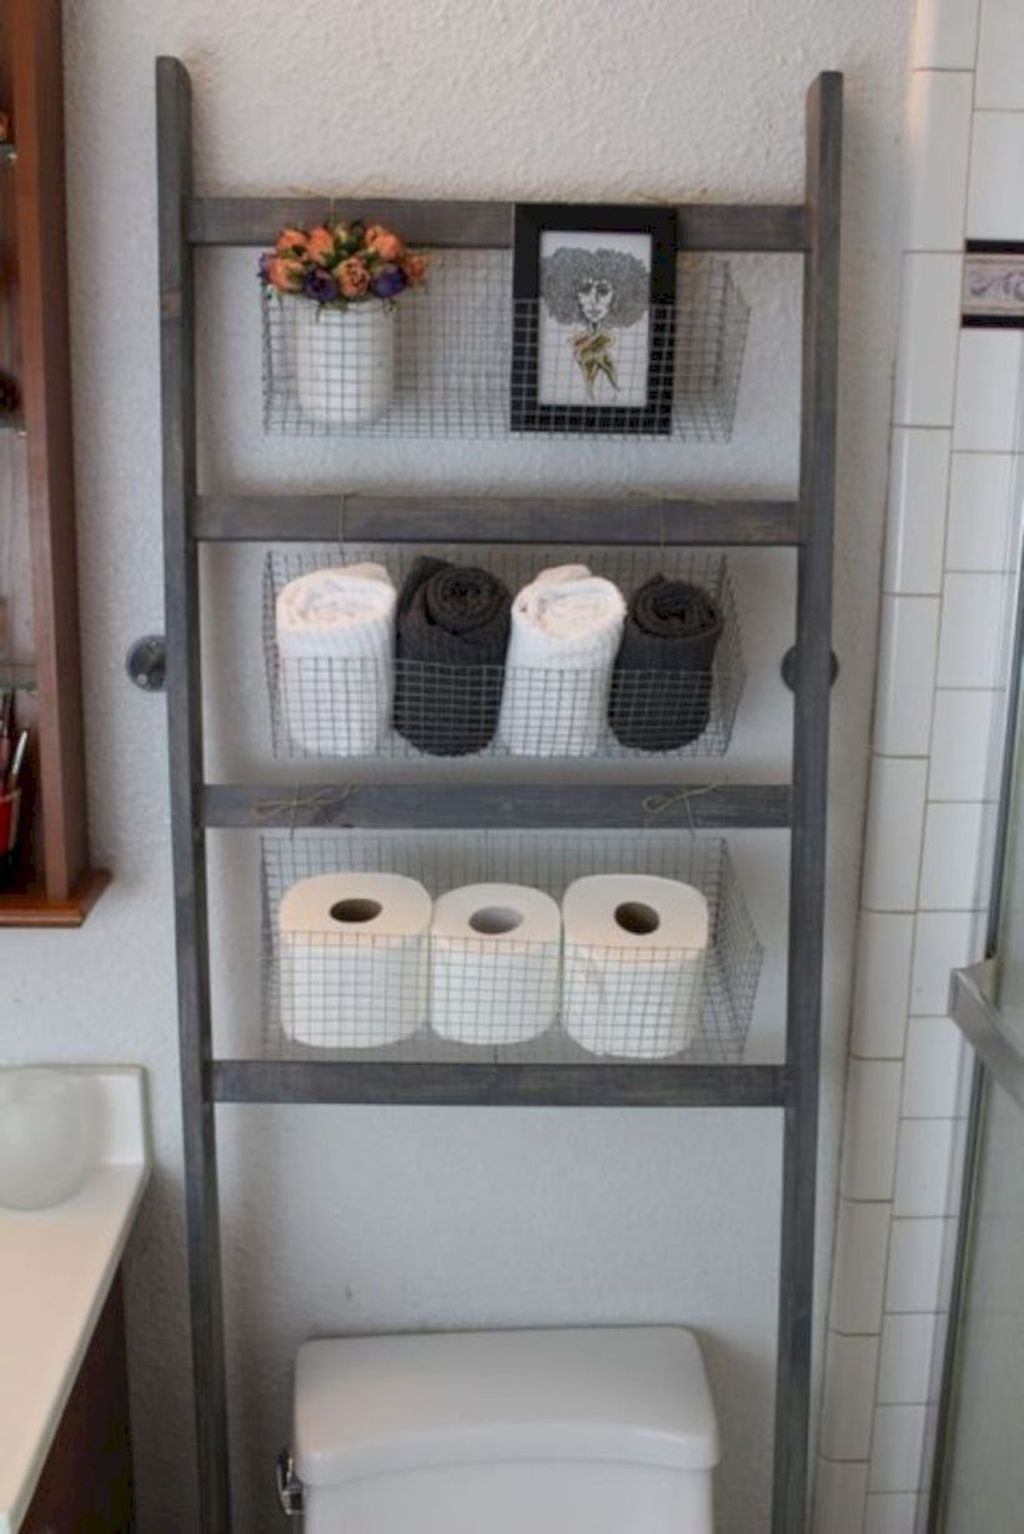 Pin By Hali Buhr On Camping And Rvs Diy Bathroom Storage Bathroom Storage Ladder Small Bathroom Shelves